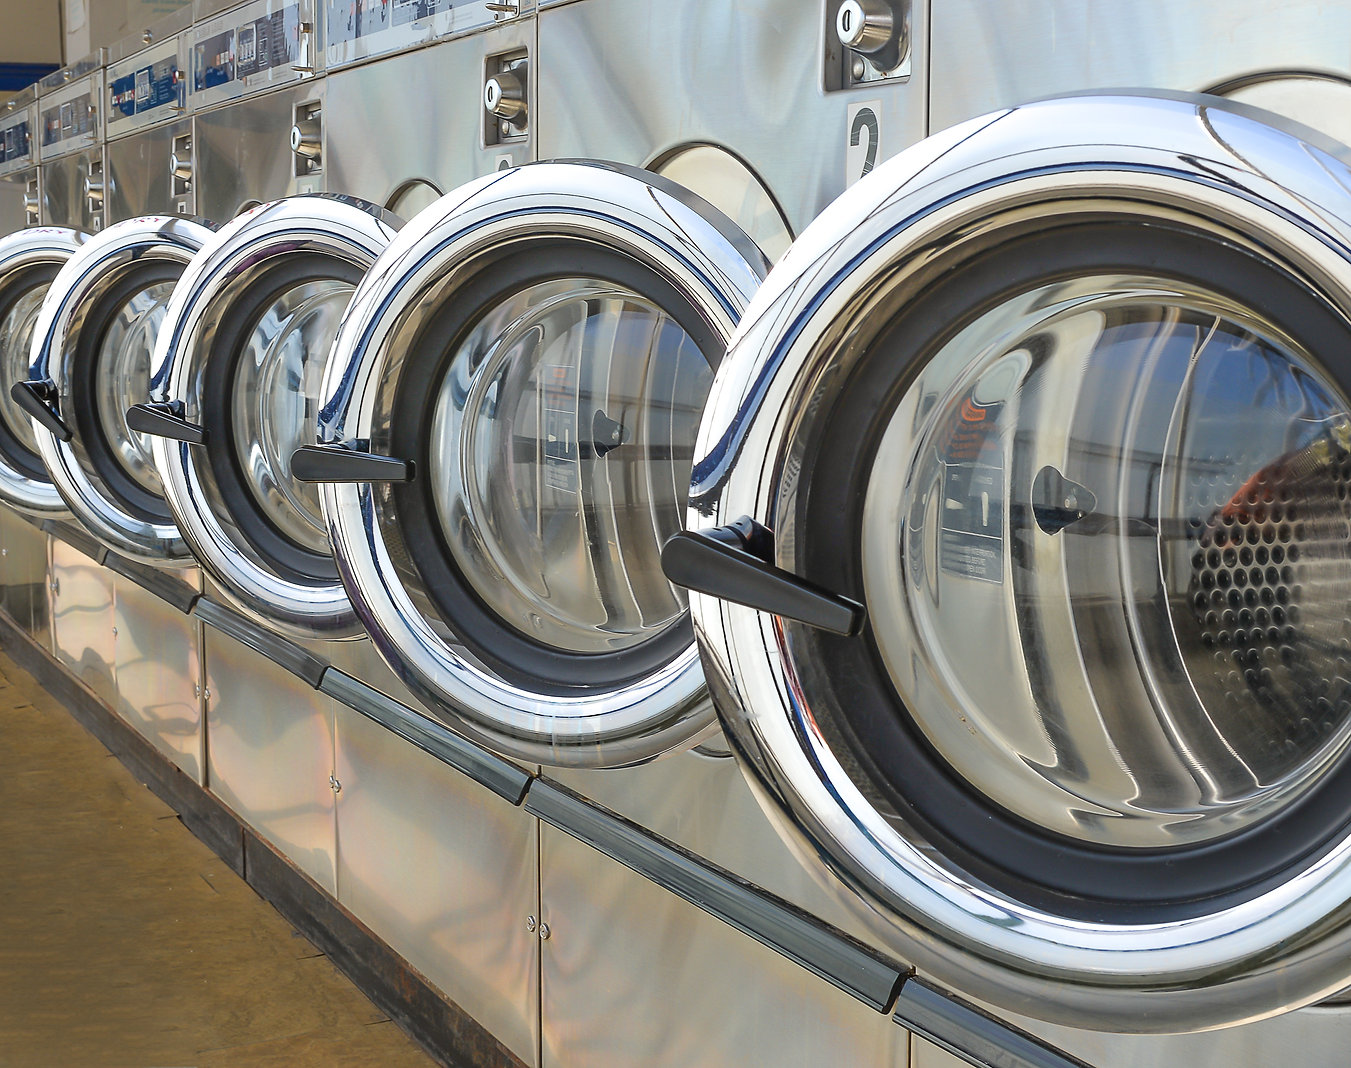 stock-photo-row-of-industrial-laundry-ma